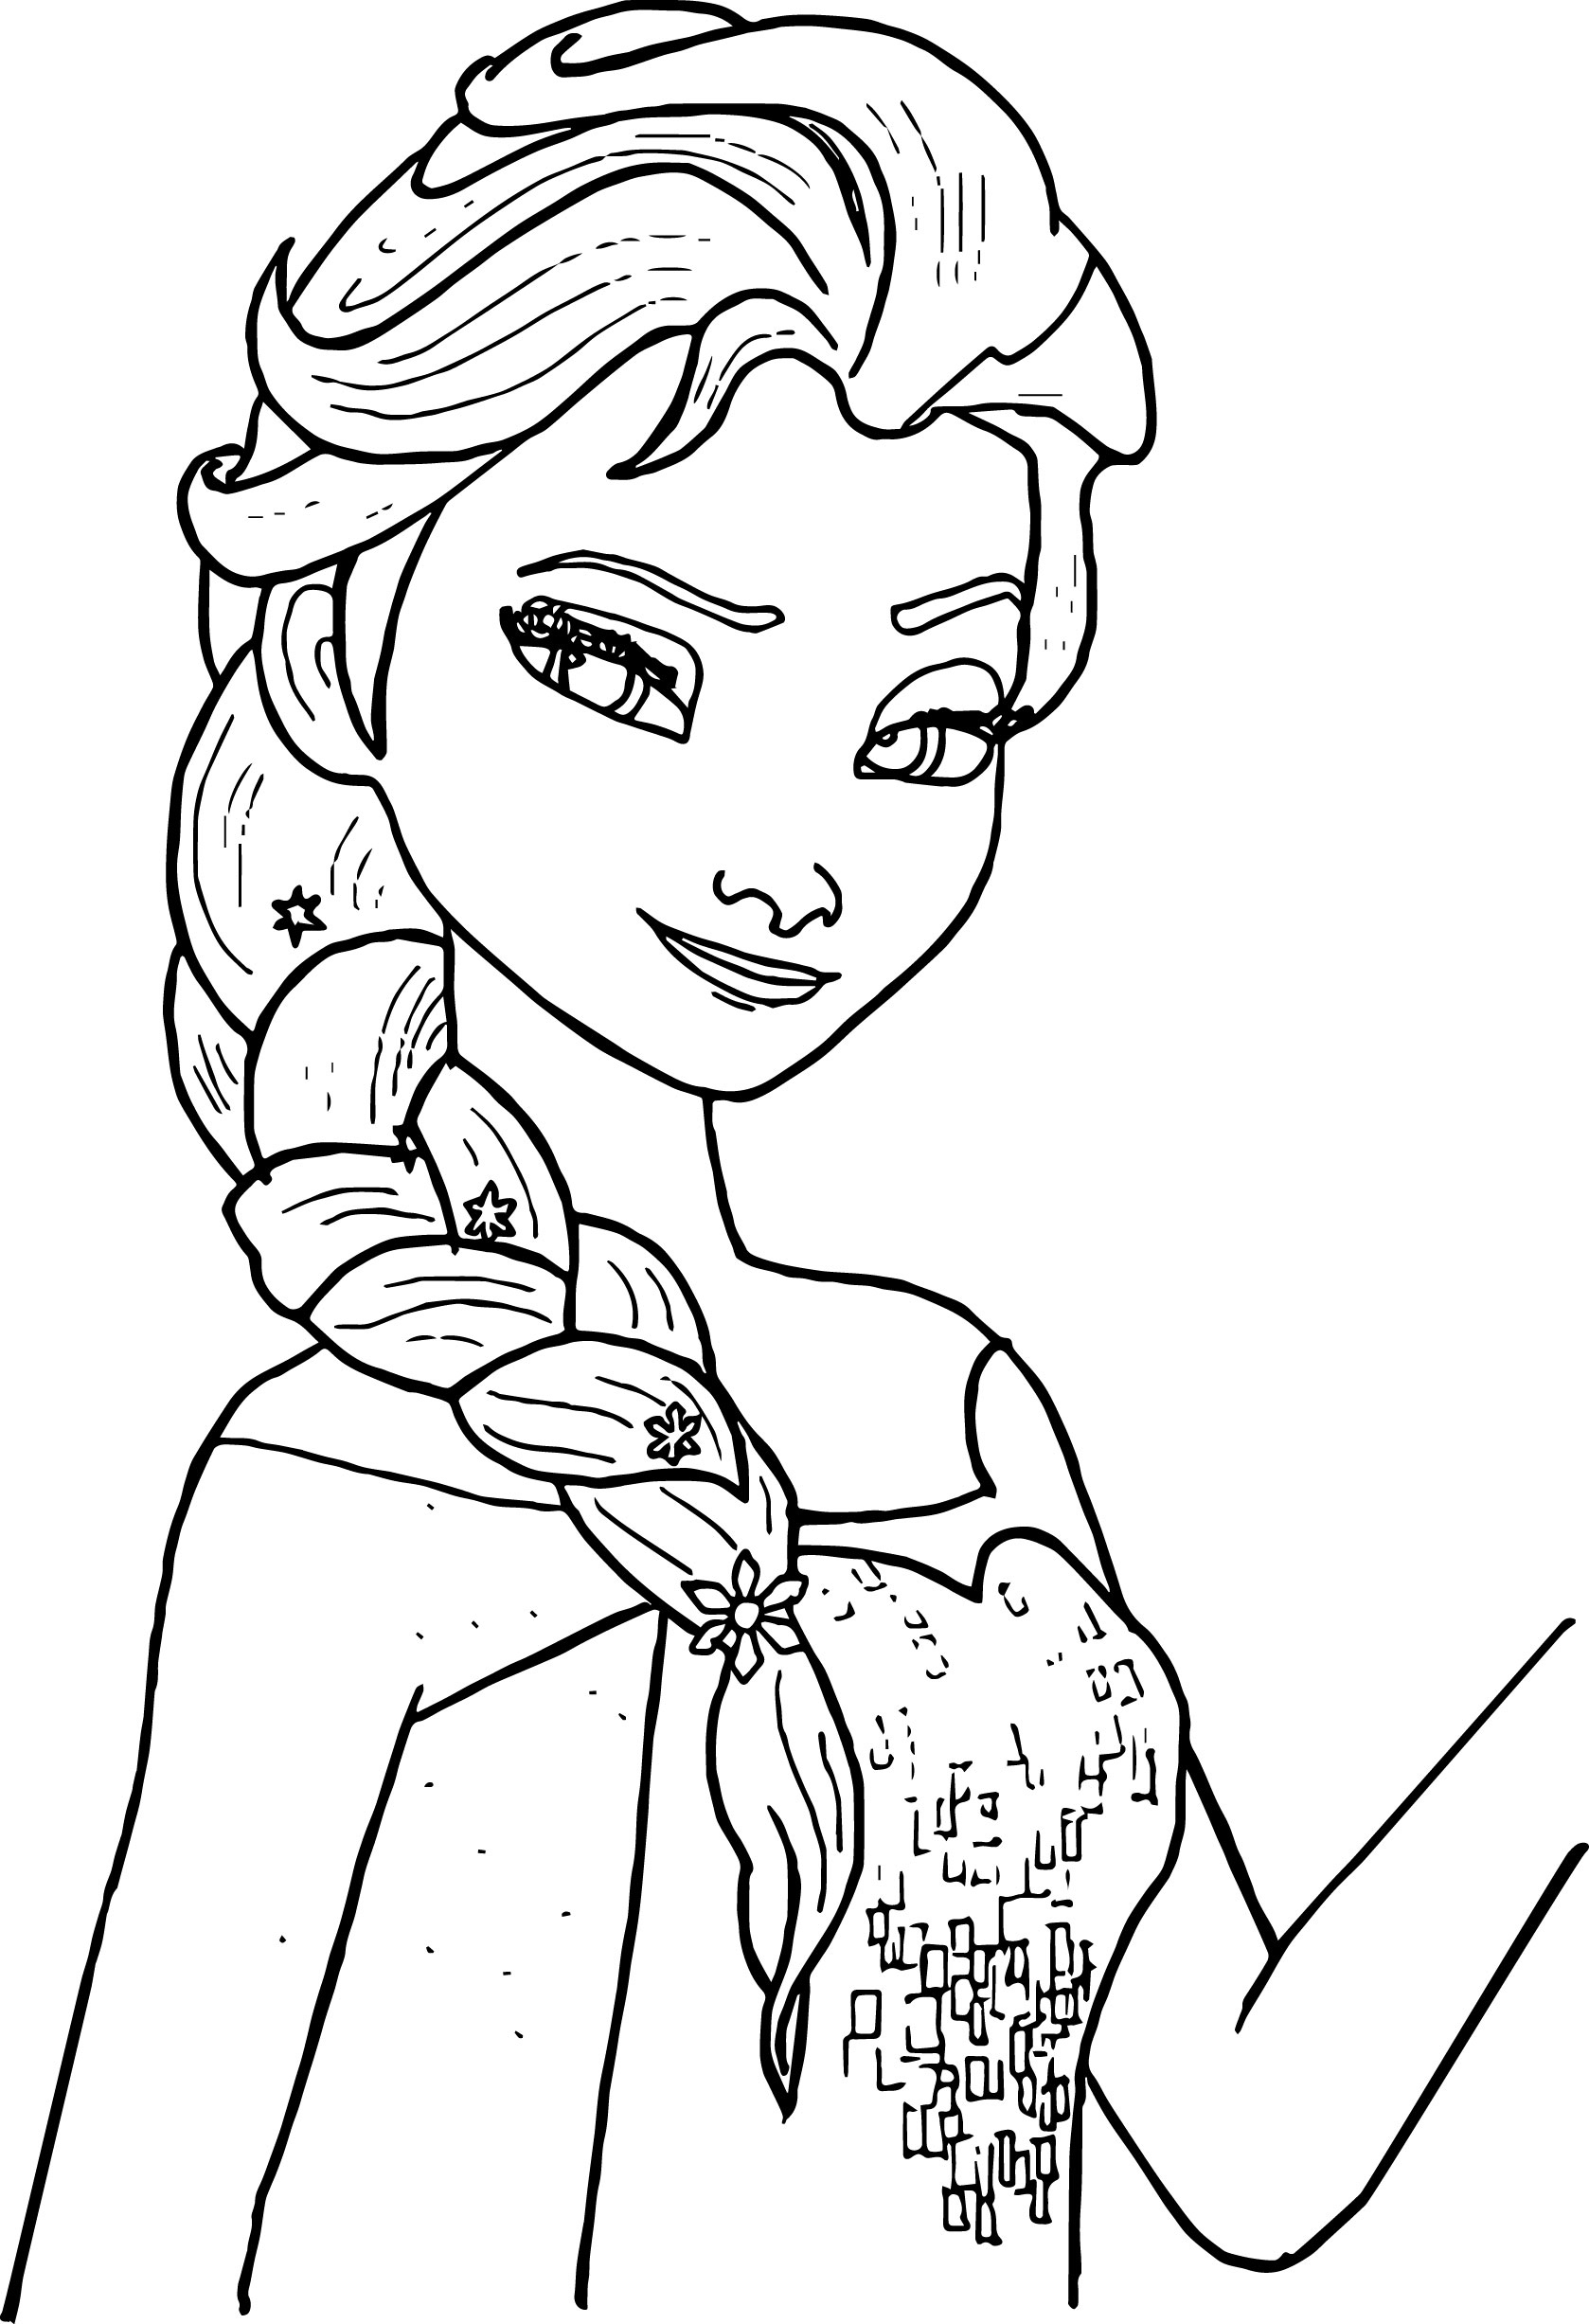 elsa frozen coloring sheets frozen 2 elsa coloring pages printable elsa coloring sheets frozen